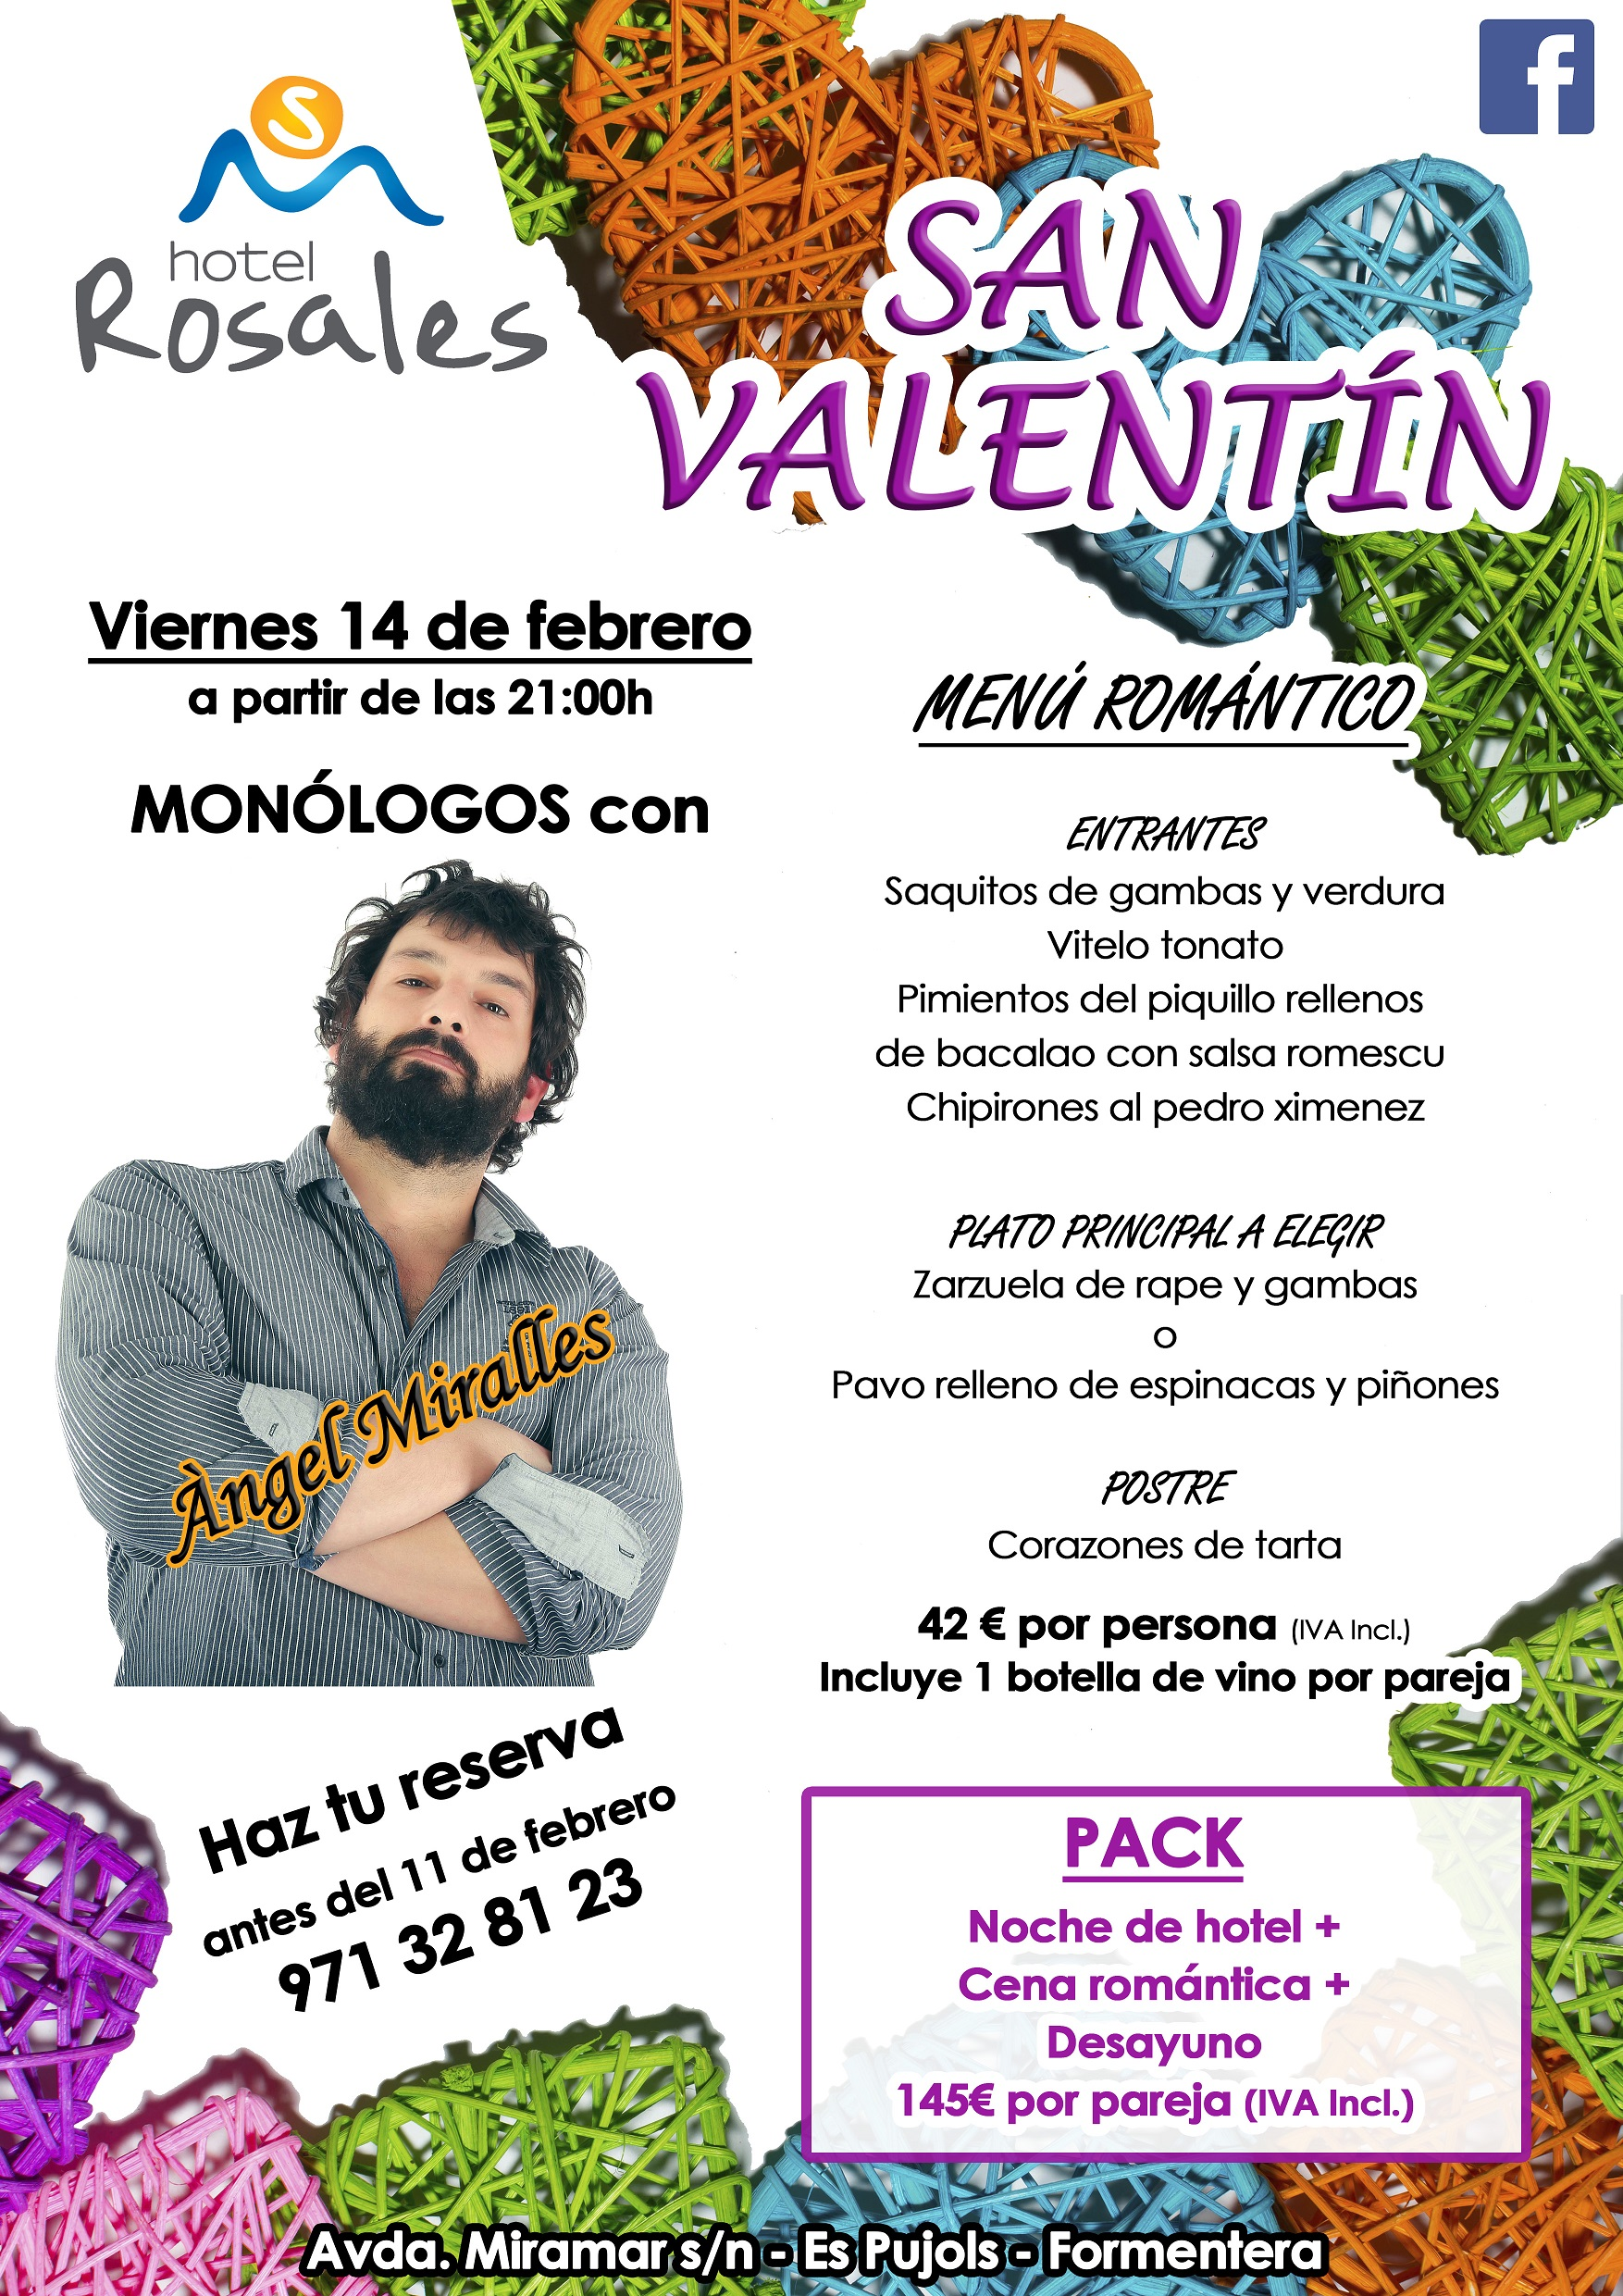 Celebrate Valentine's Day at Hotel Rosales